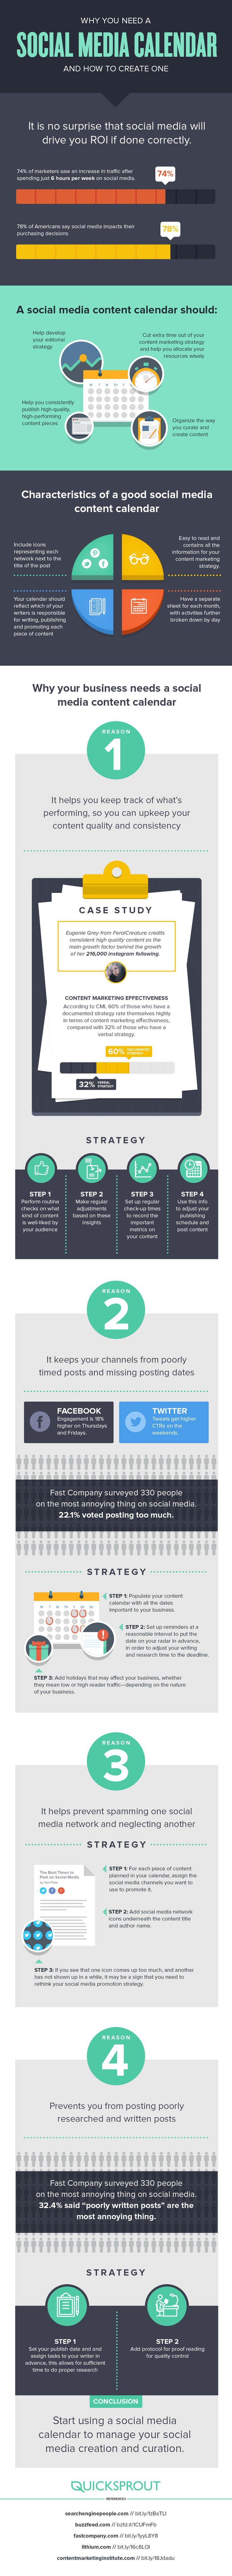 PR pros working in the trenches of social media know the value of a great content calendar. For some help with getting started creating your own social media content calendar, take a look at this infographic.